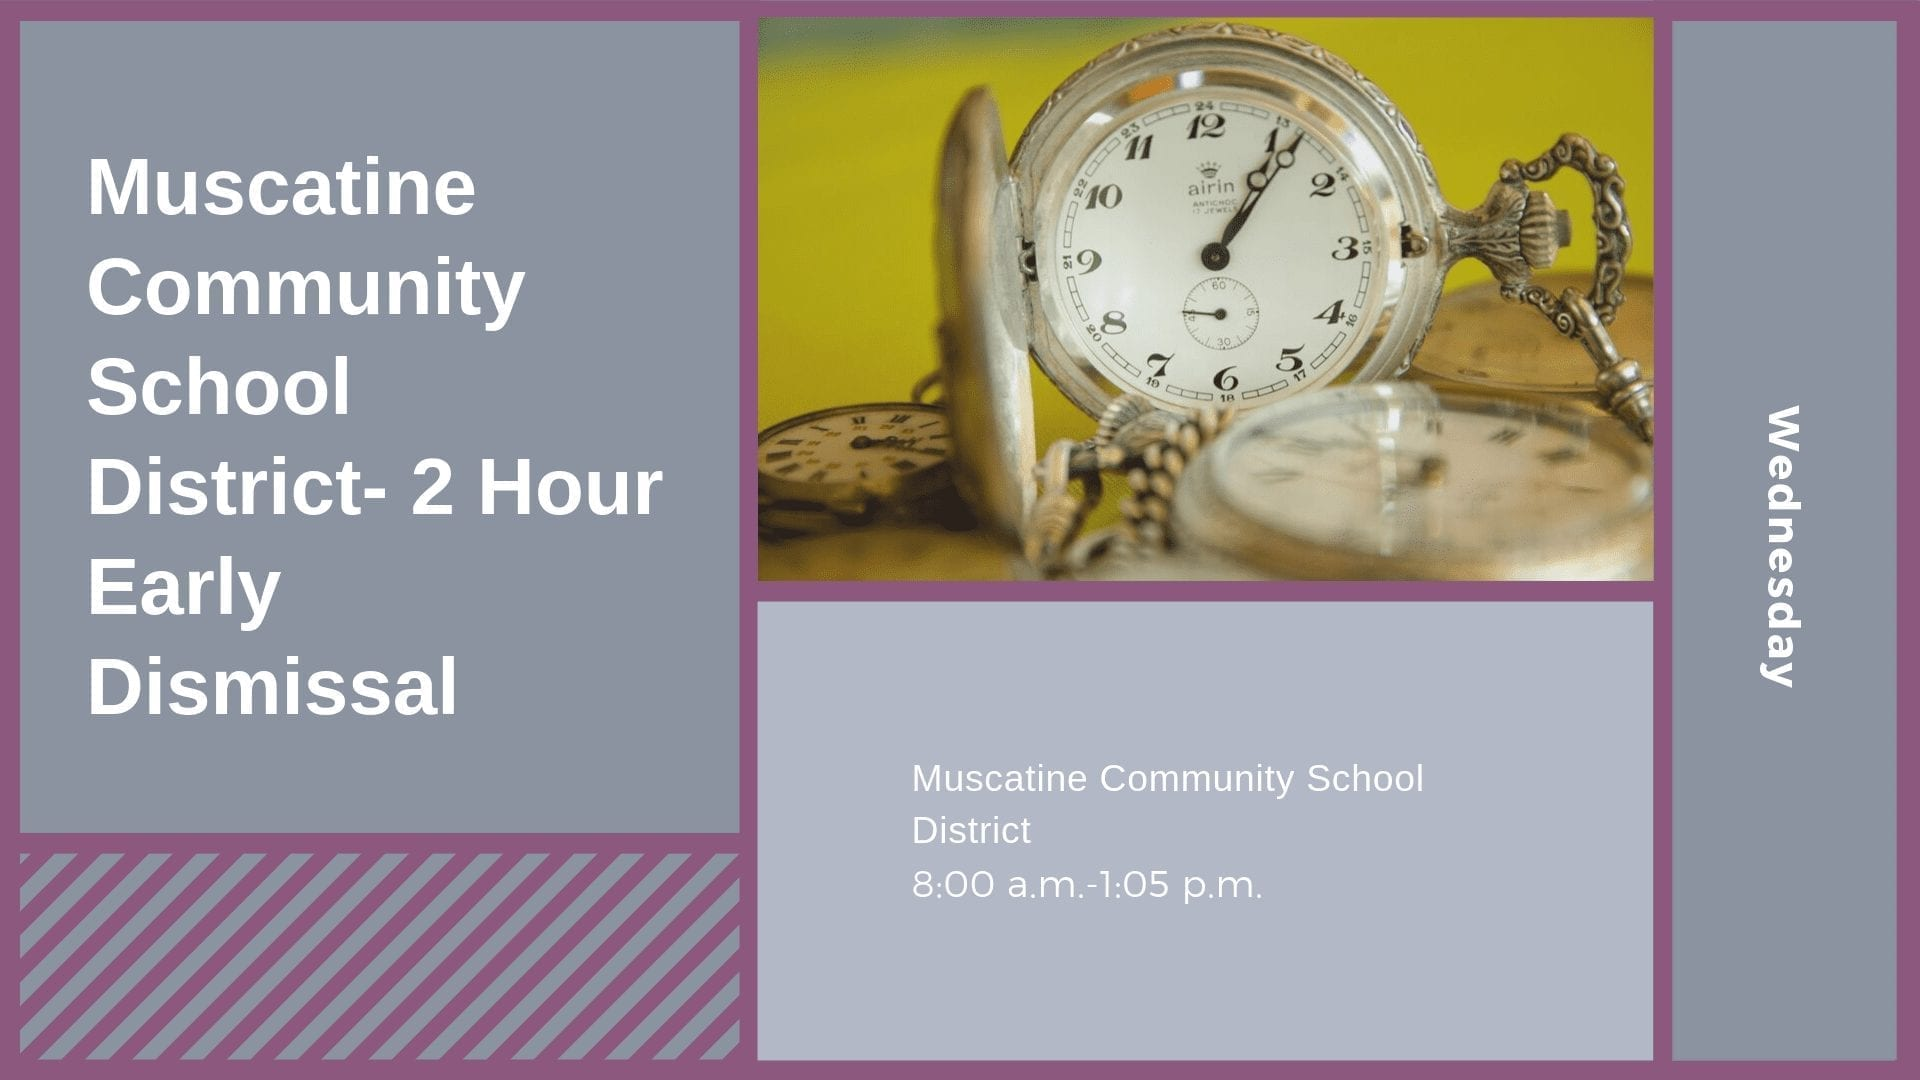 Muscatine Community School District- 2 Hour Early Dismissal